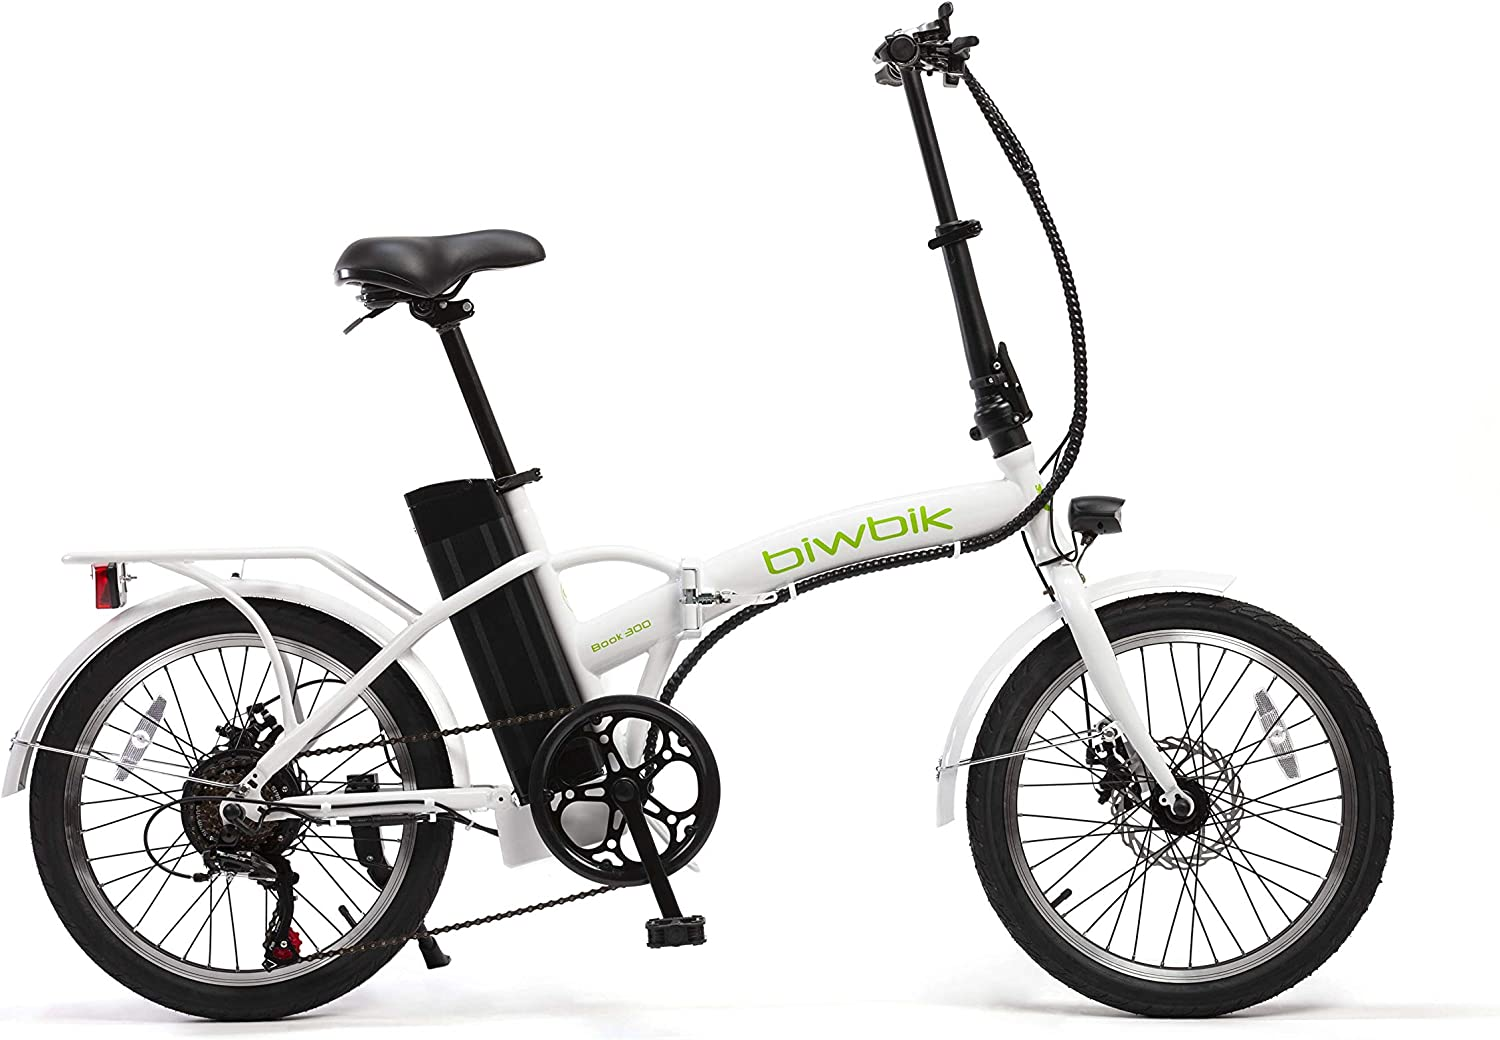 BIWBIK Bicicleta ELECTRICA Plegable Book: Amazon.es: Deportes y ...